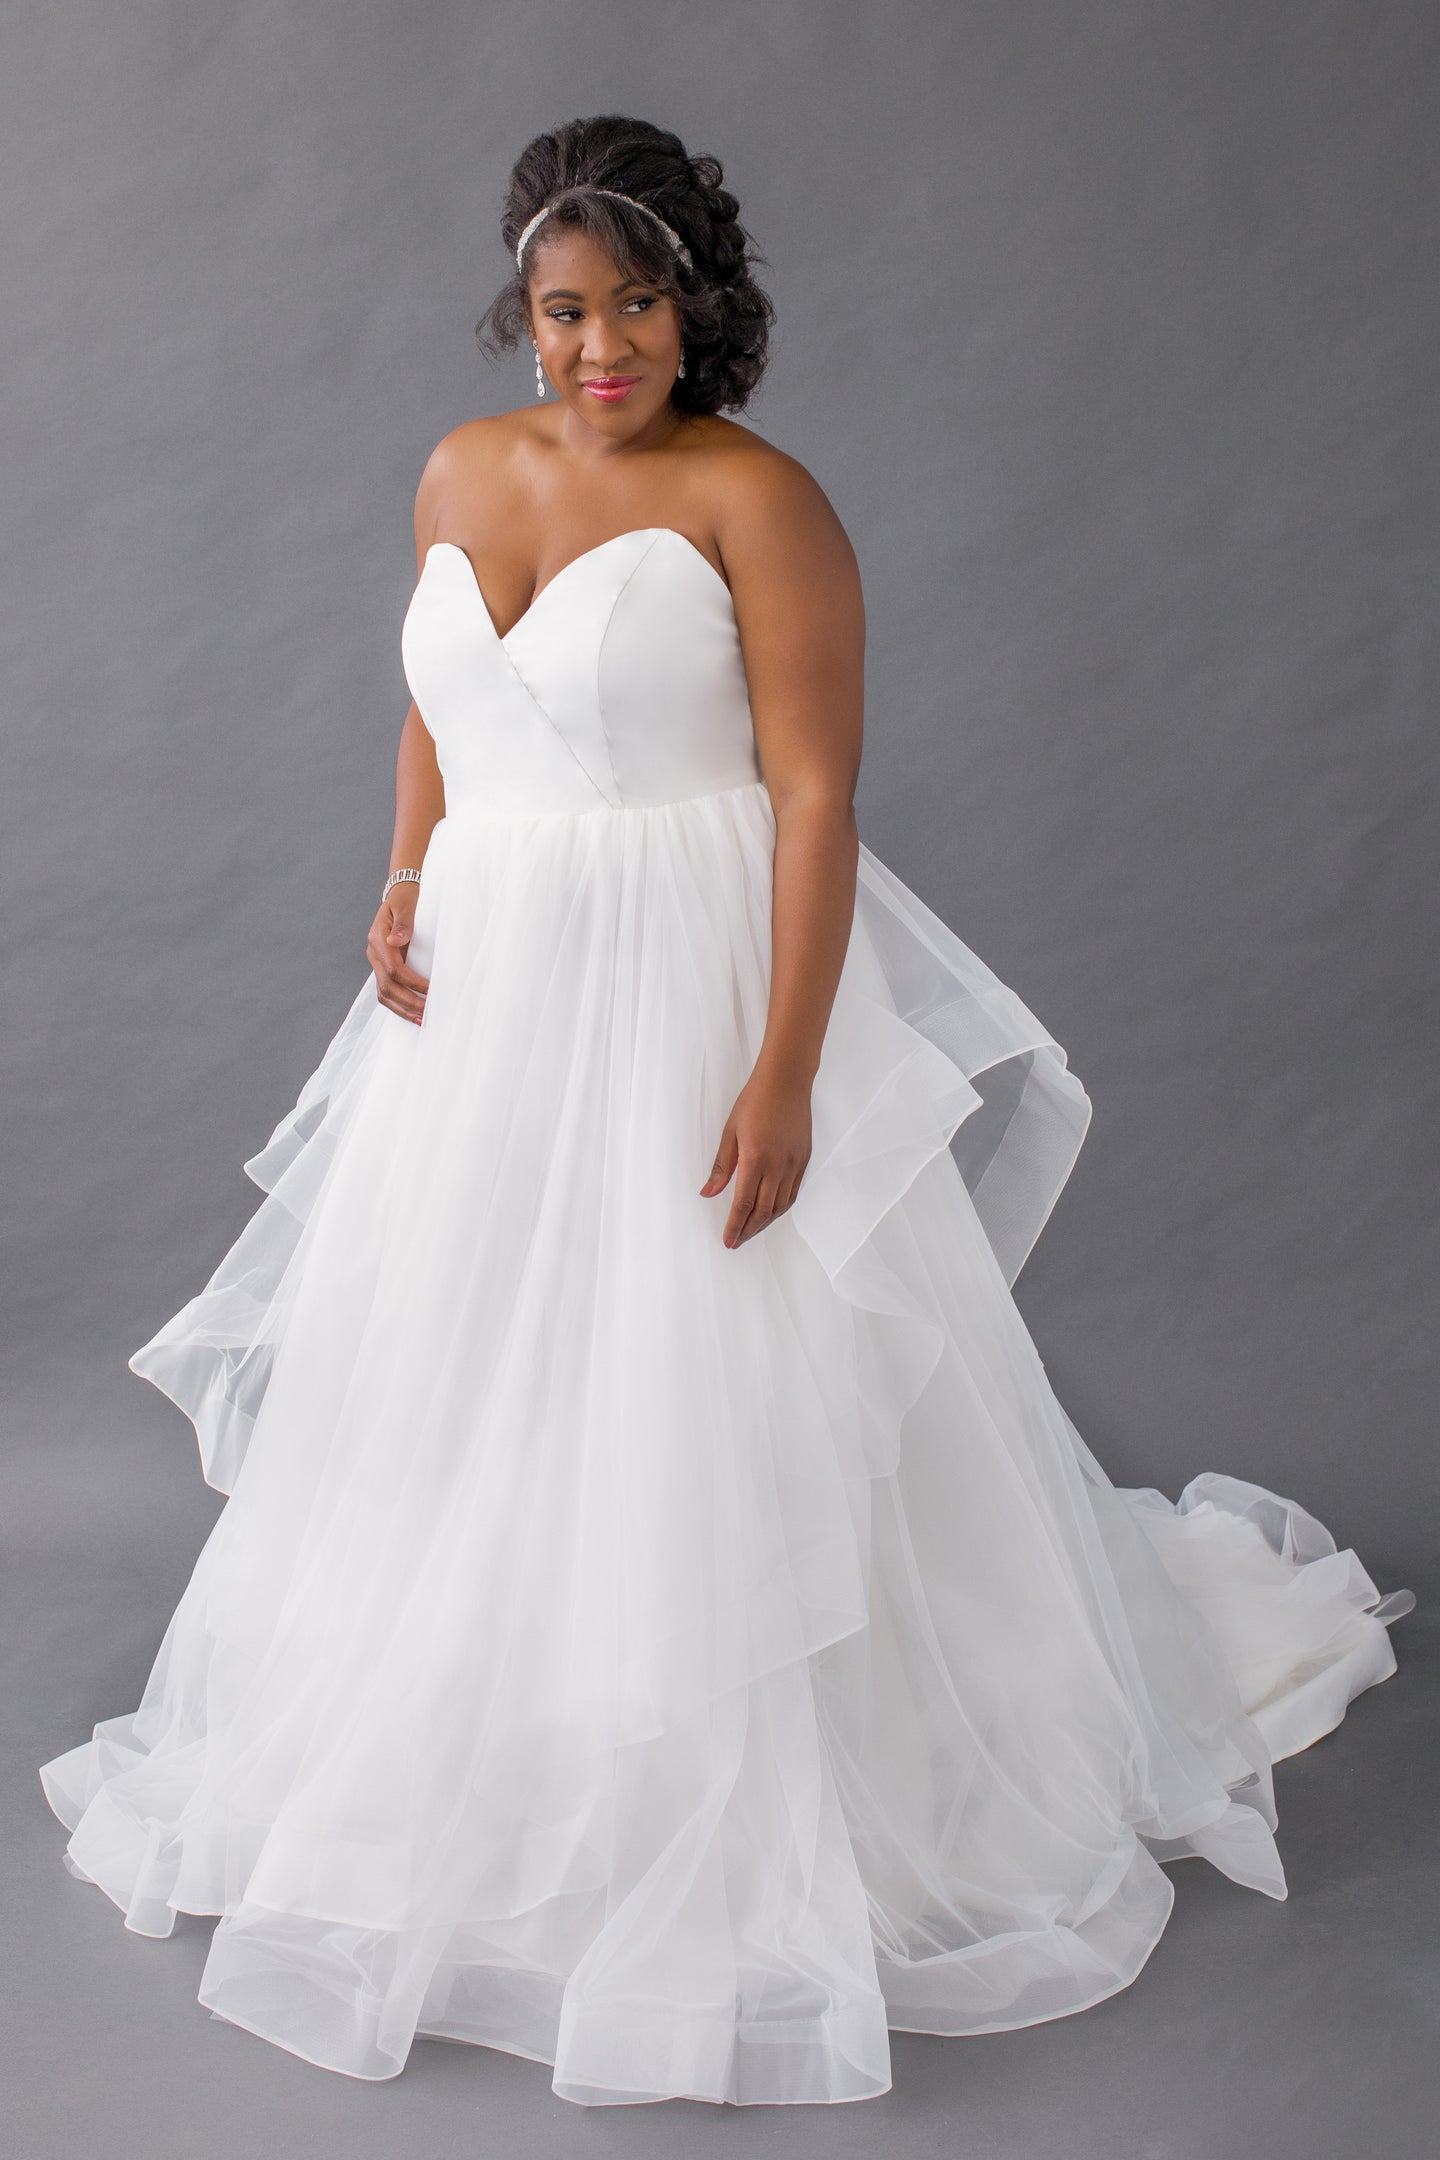 lanai top matson skirt tulip tulle wedding dress